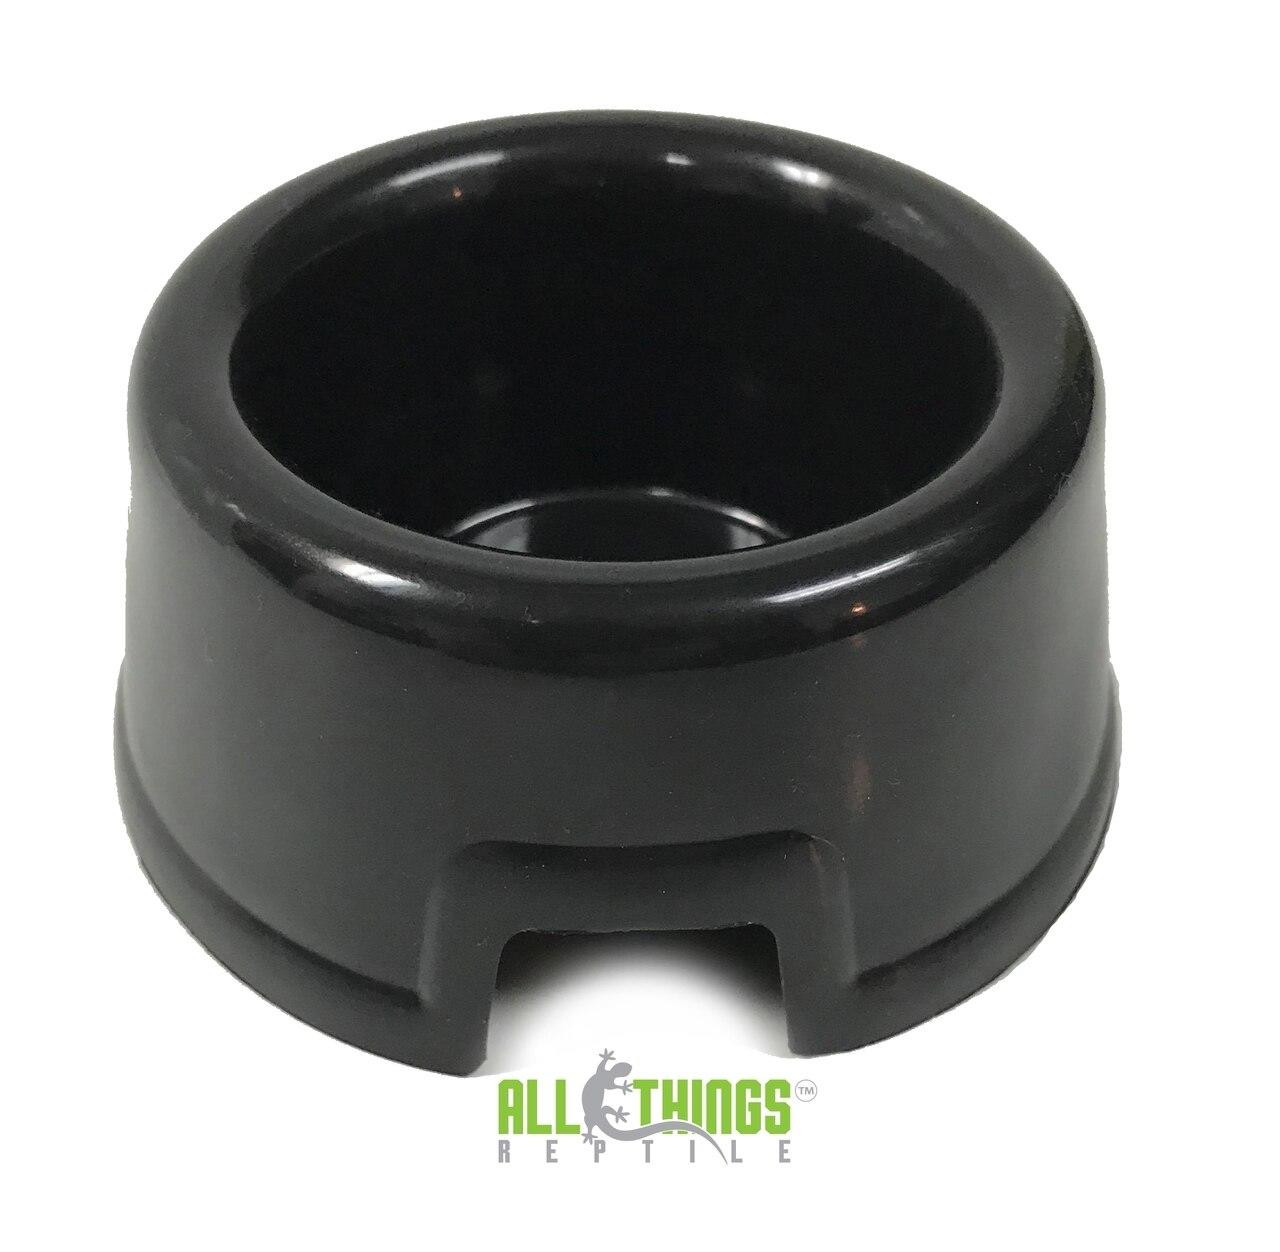 All Things Reptile ATR Water Bowl Large